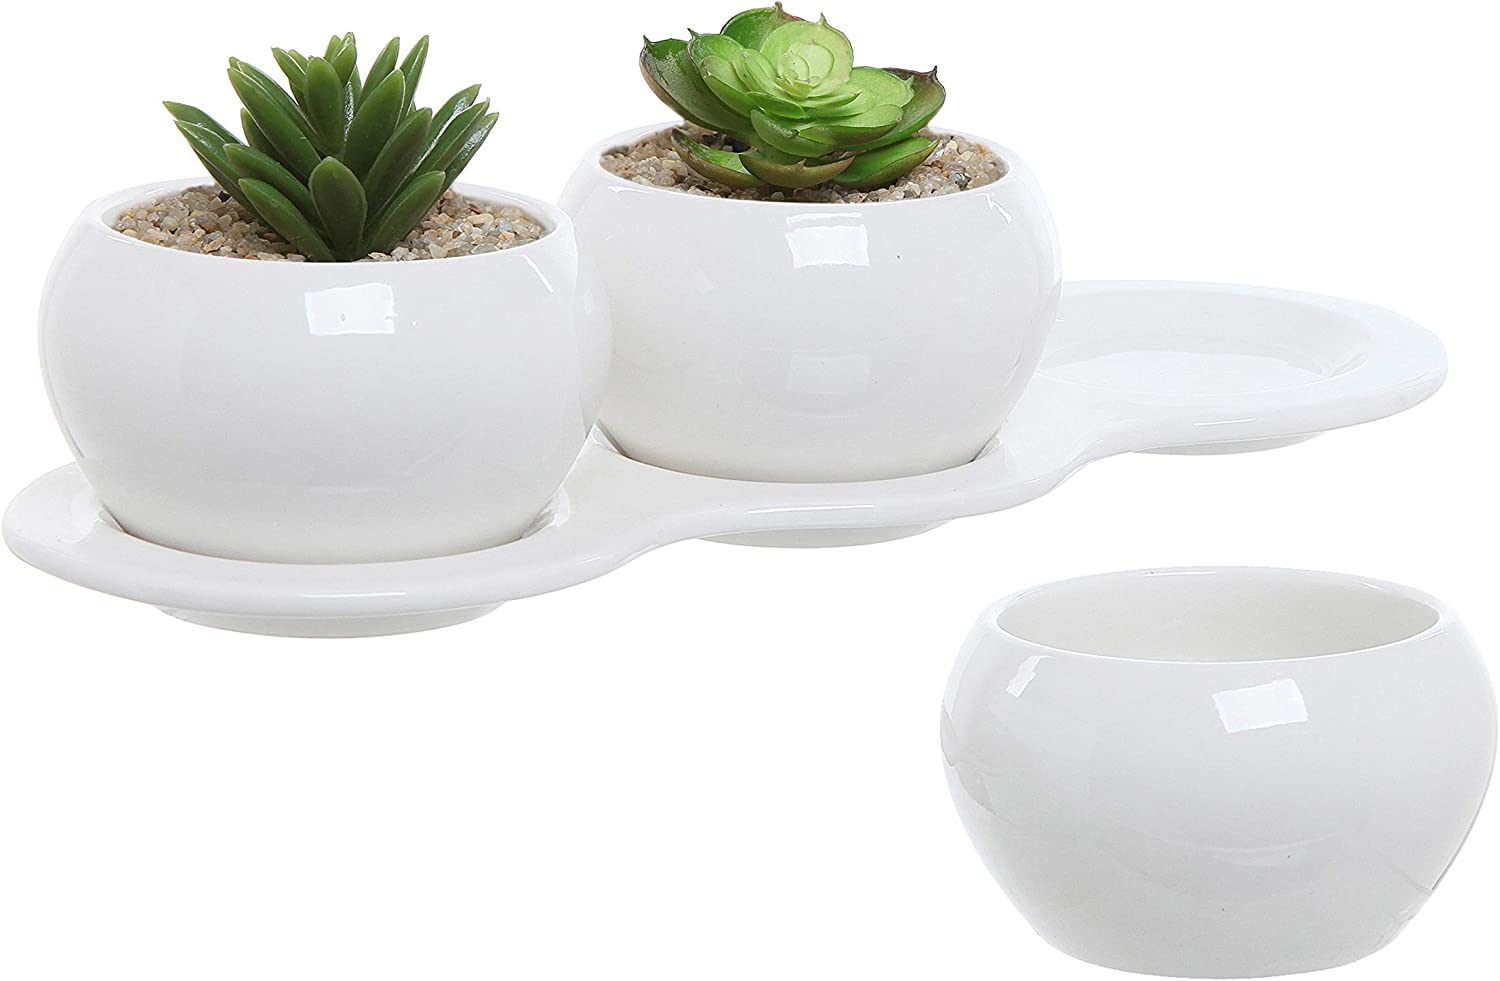 Mygift 4 Piece Small White Ceramic Planter Set Kitchen Herb Garden Plant Pots Collection With 3 Pots 1 Tray Garden Outdoor